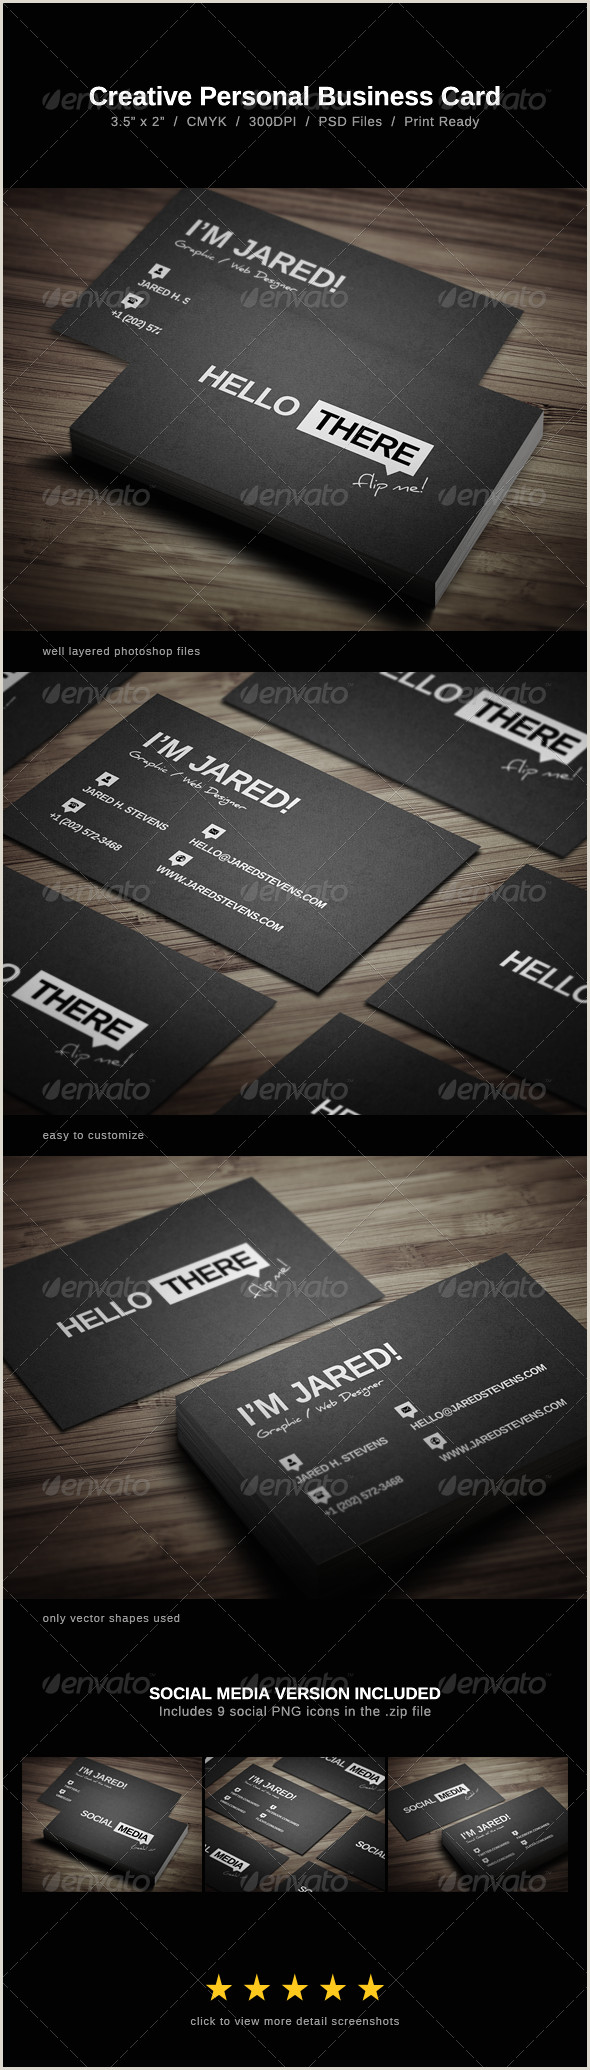 Personal Business Cards Examples Personal Business Card Templates & Designs From Graphicriver